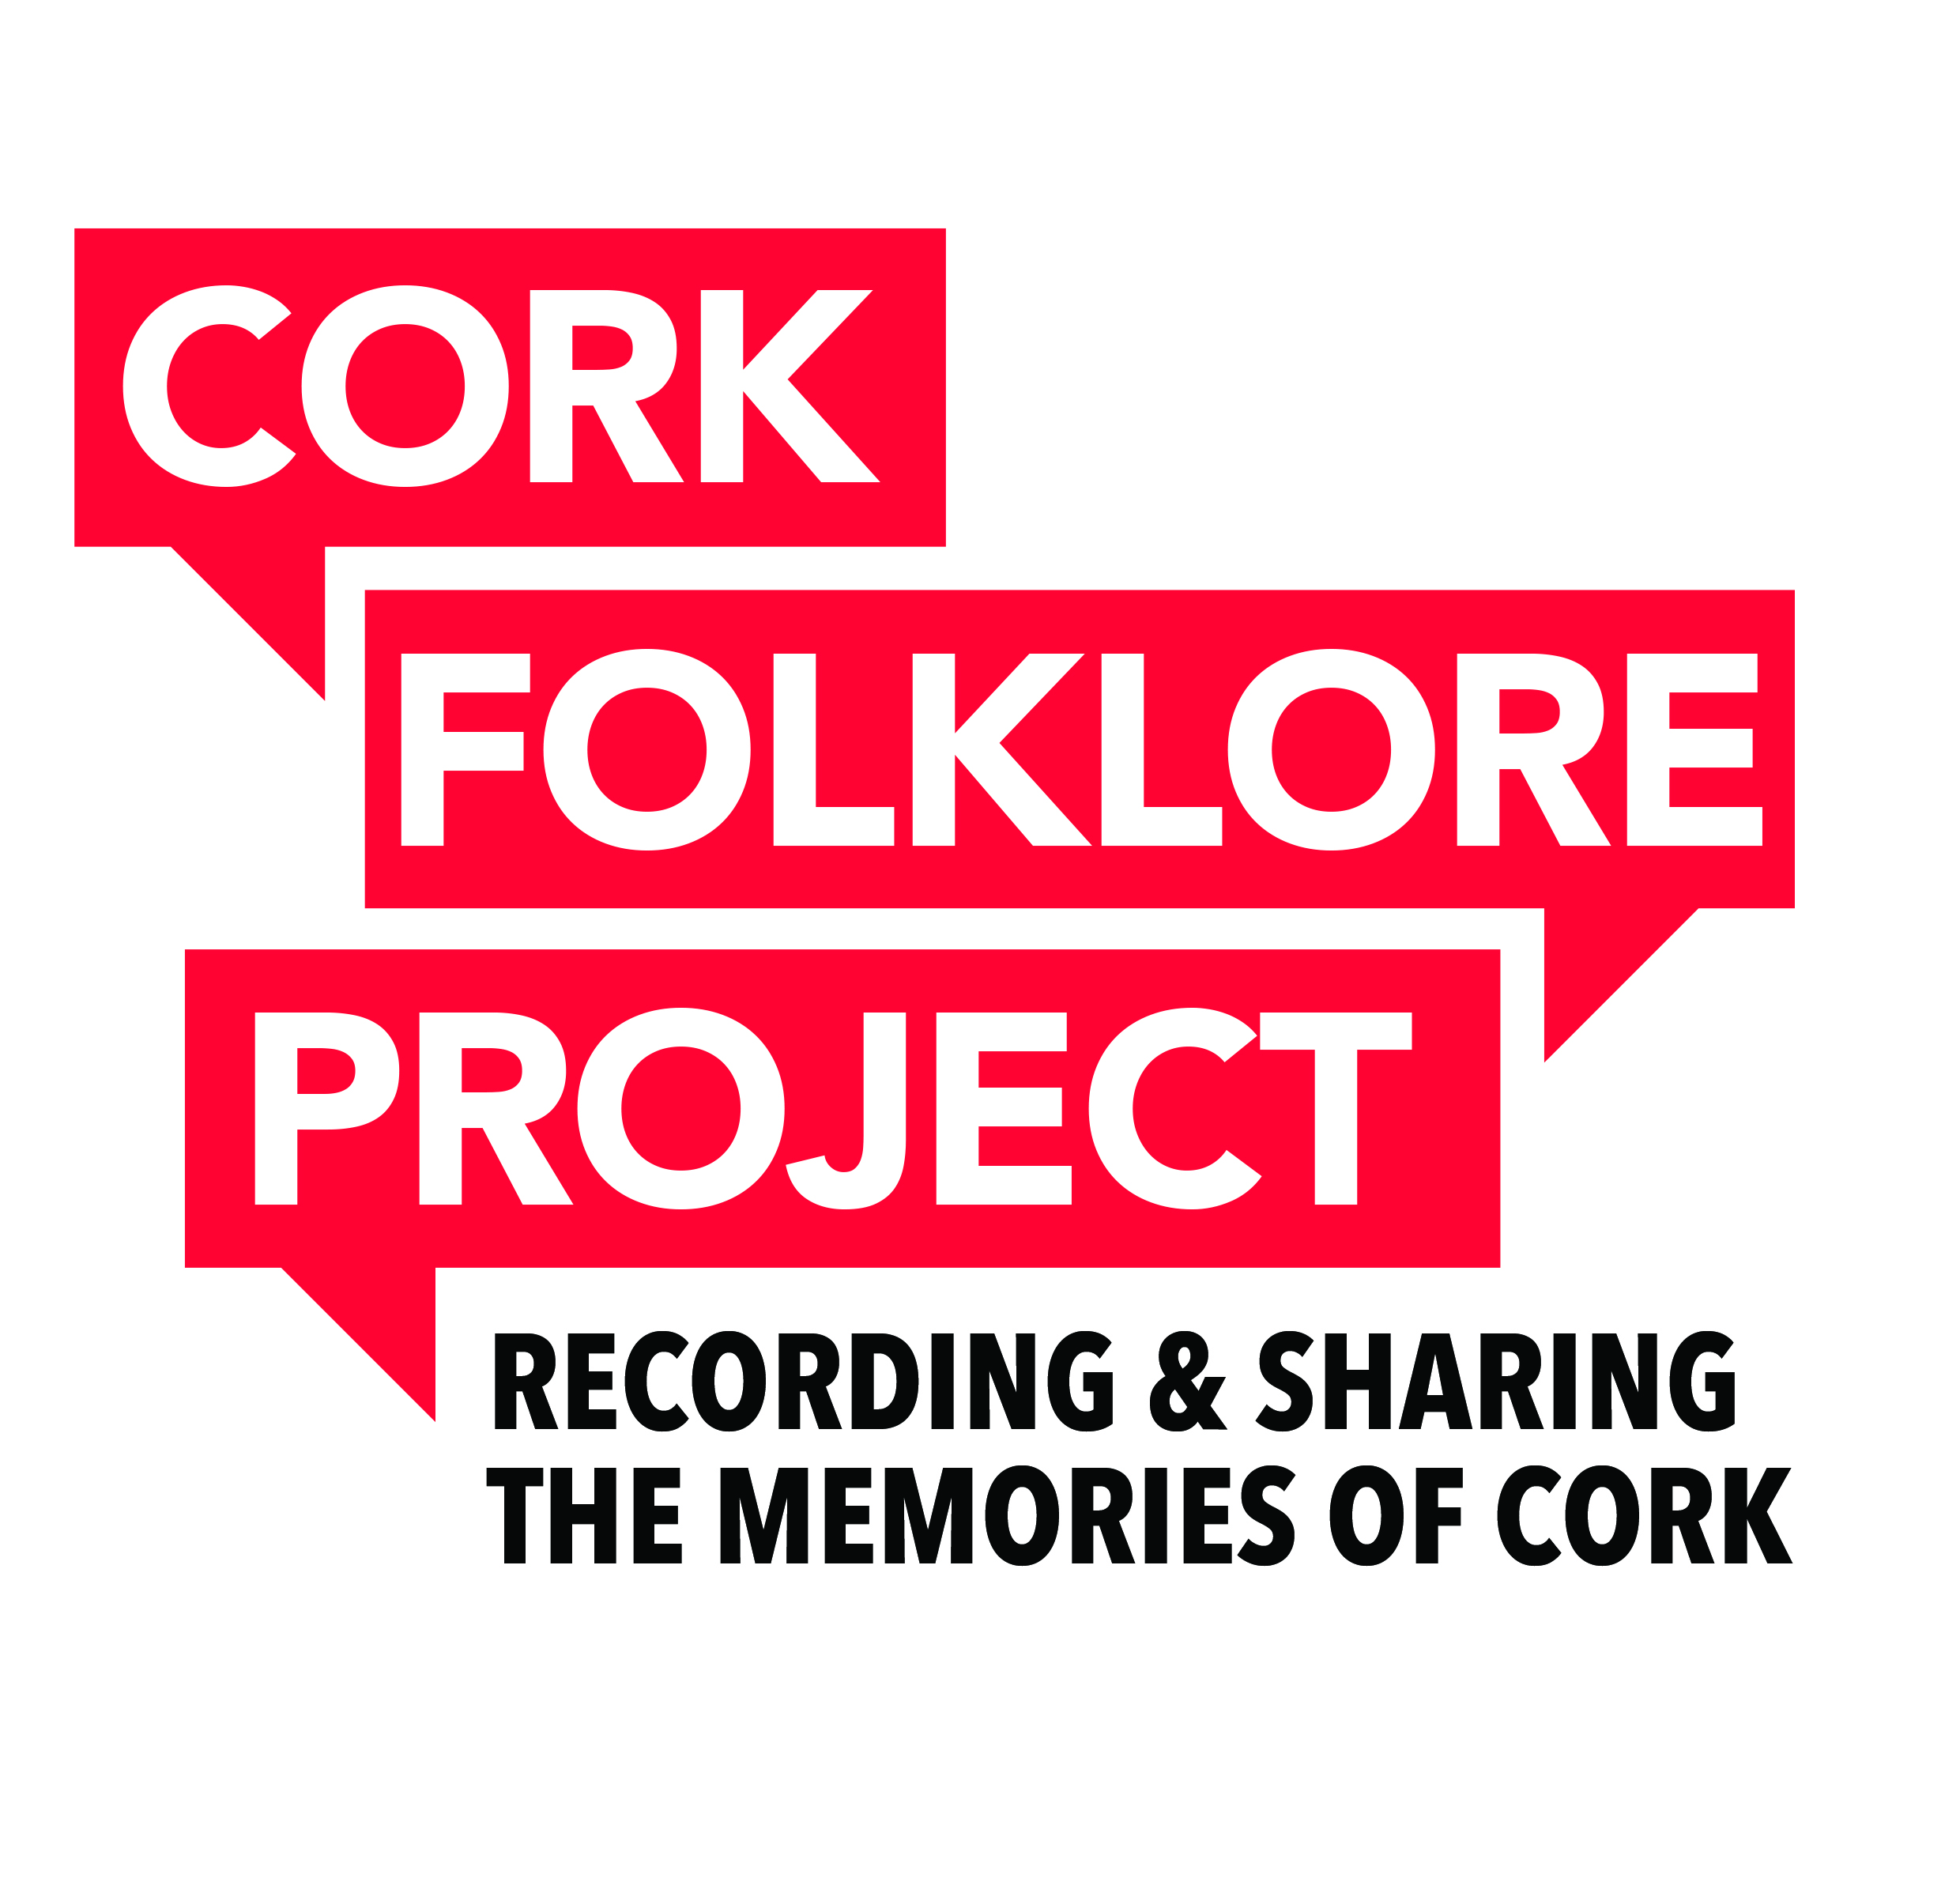 Cork Folklore Project Logo